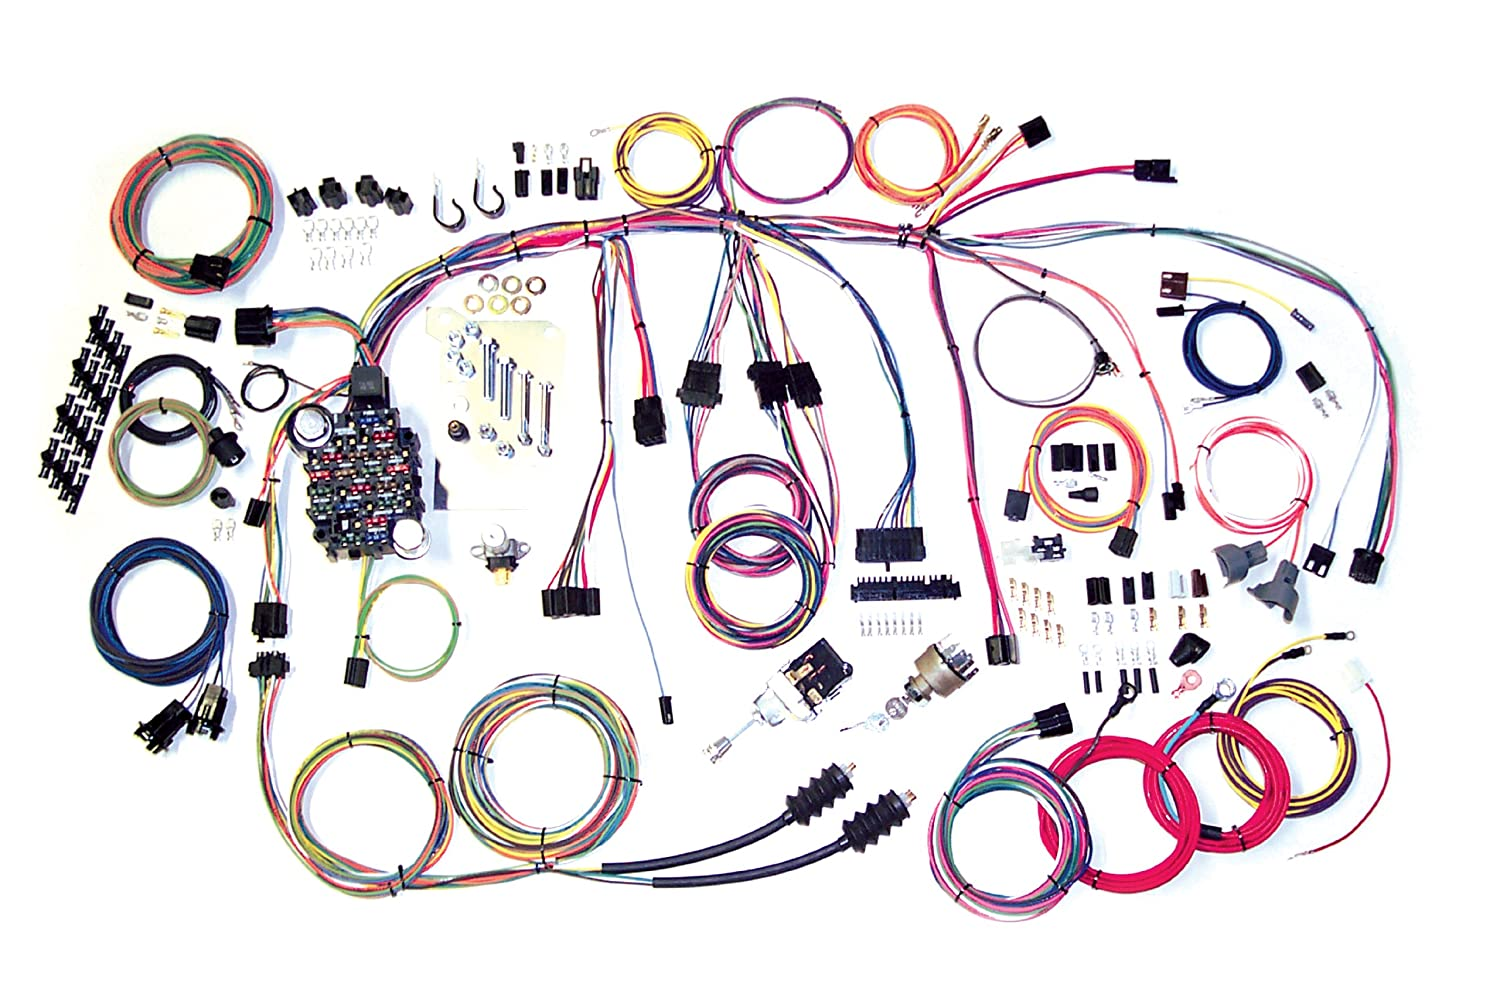 816T8GFu4LL._SL1500_ amazon com american autowire 500560 truck wiring harness for 60 65 chevy wiring harness at readyjetset.co